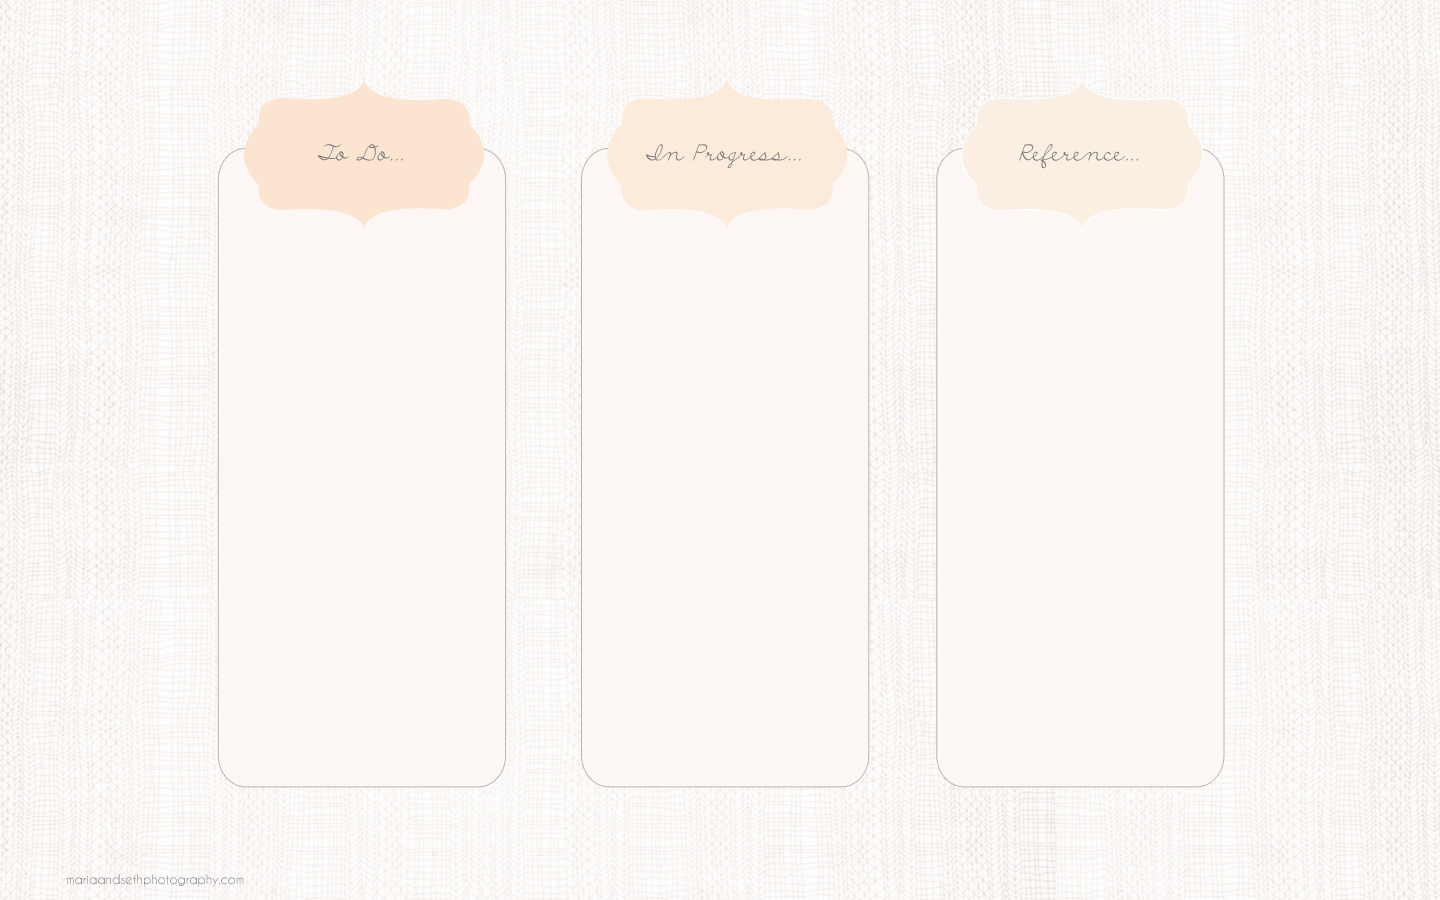 Wallpaper Backgrounds, Organizers And Ombre On Pinterest